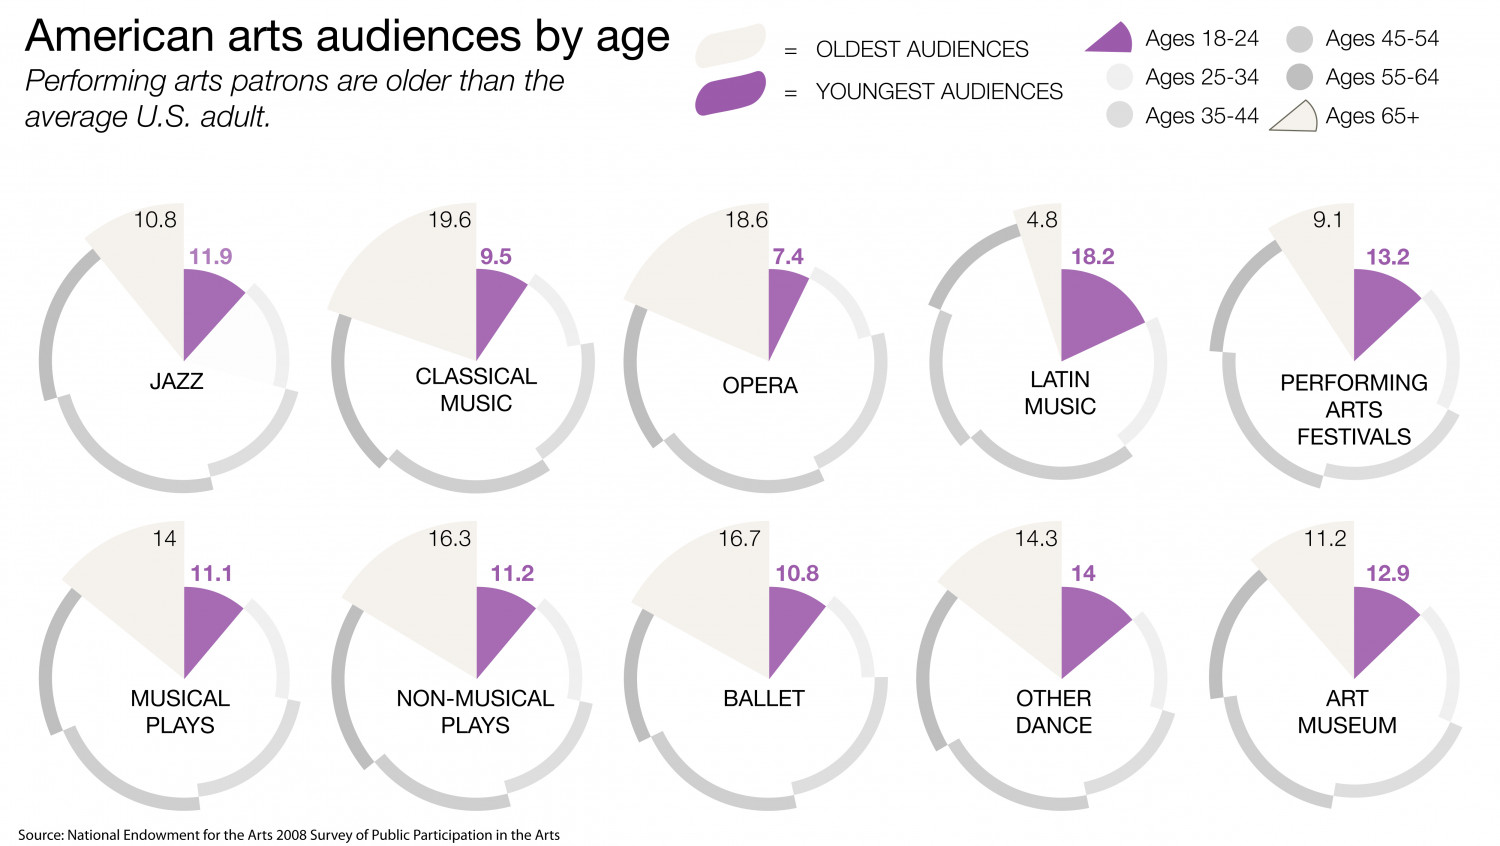 American Arts Audiences by Age Infographic